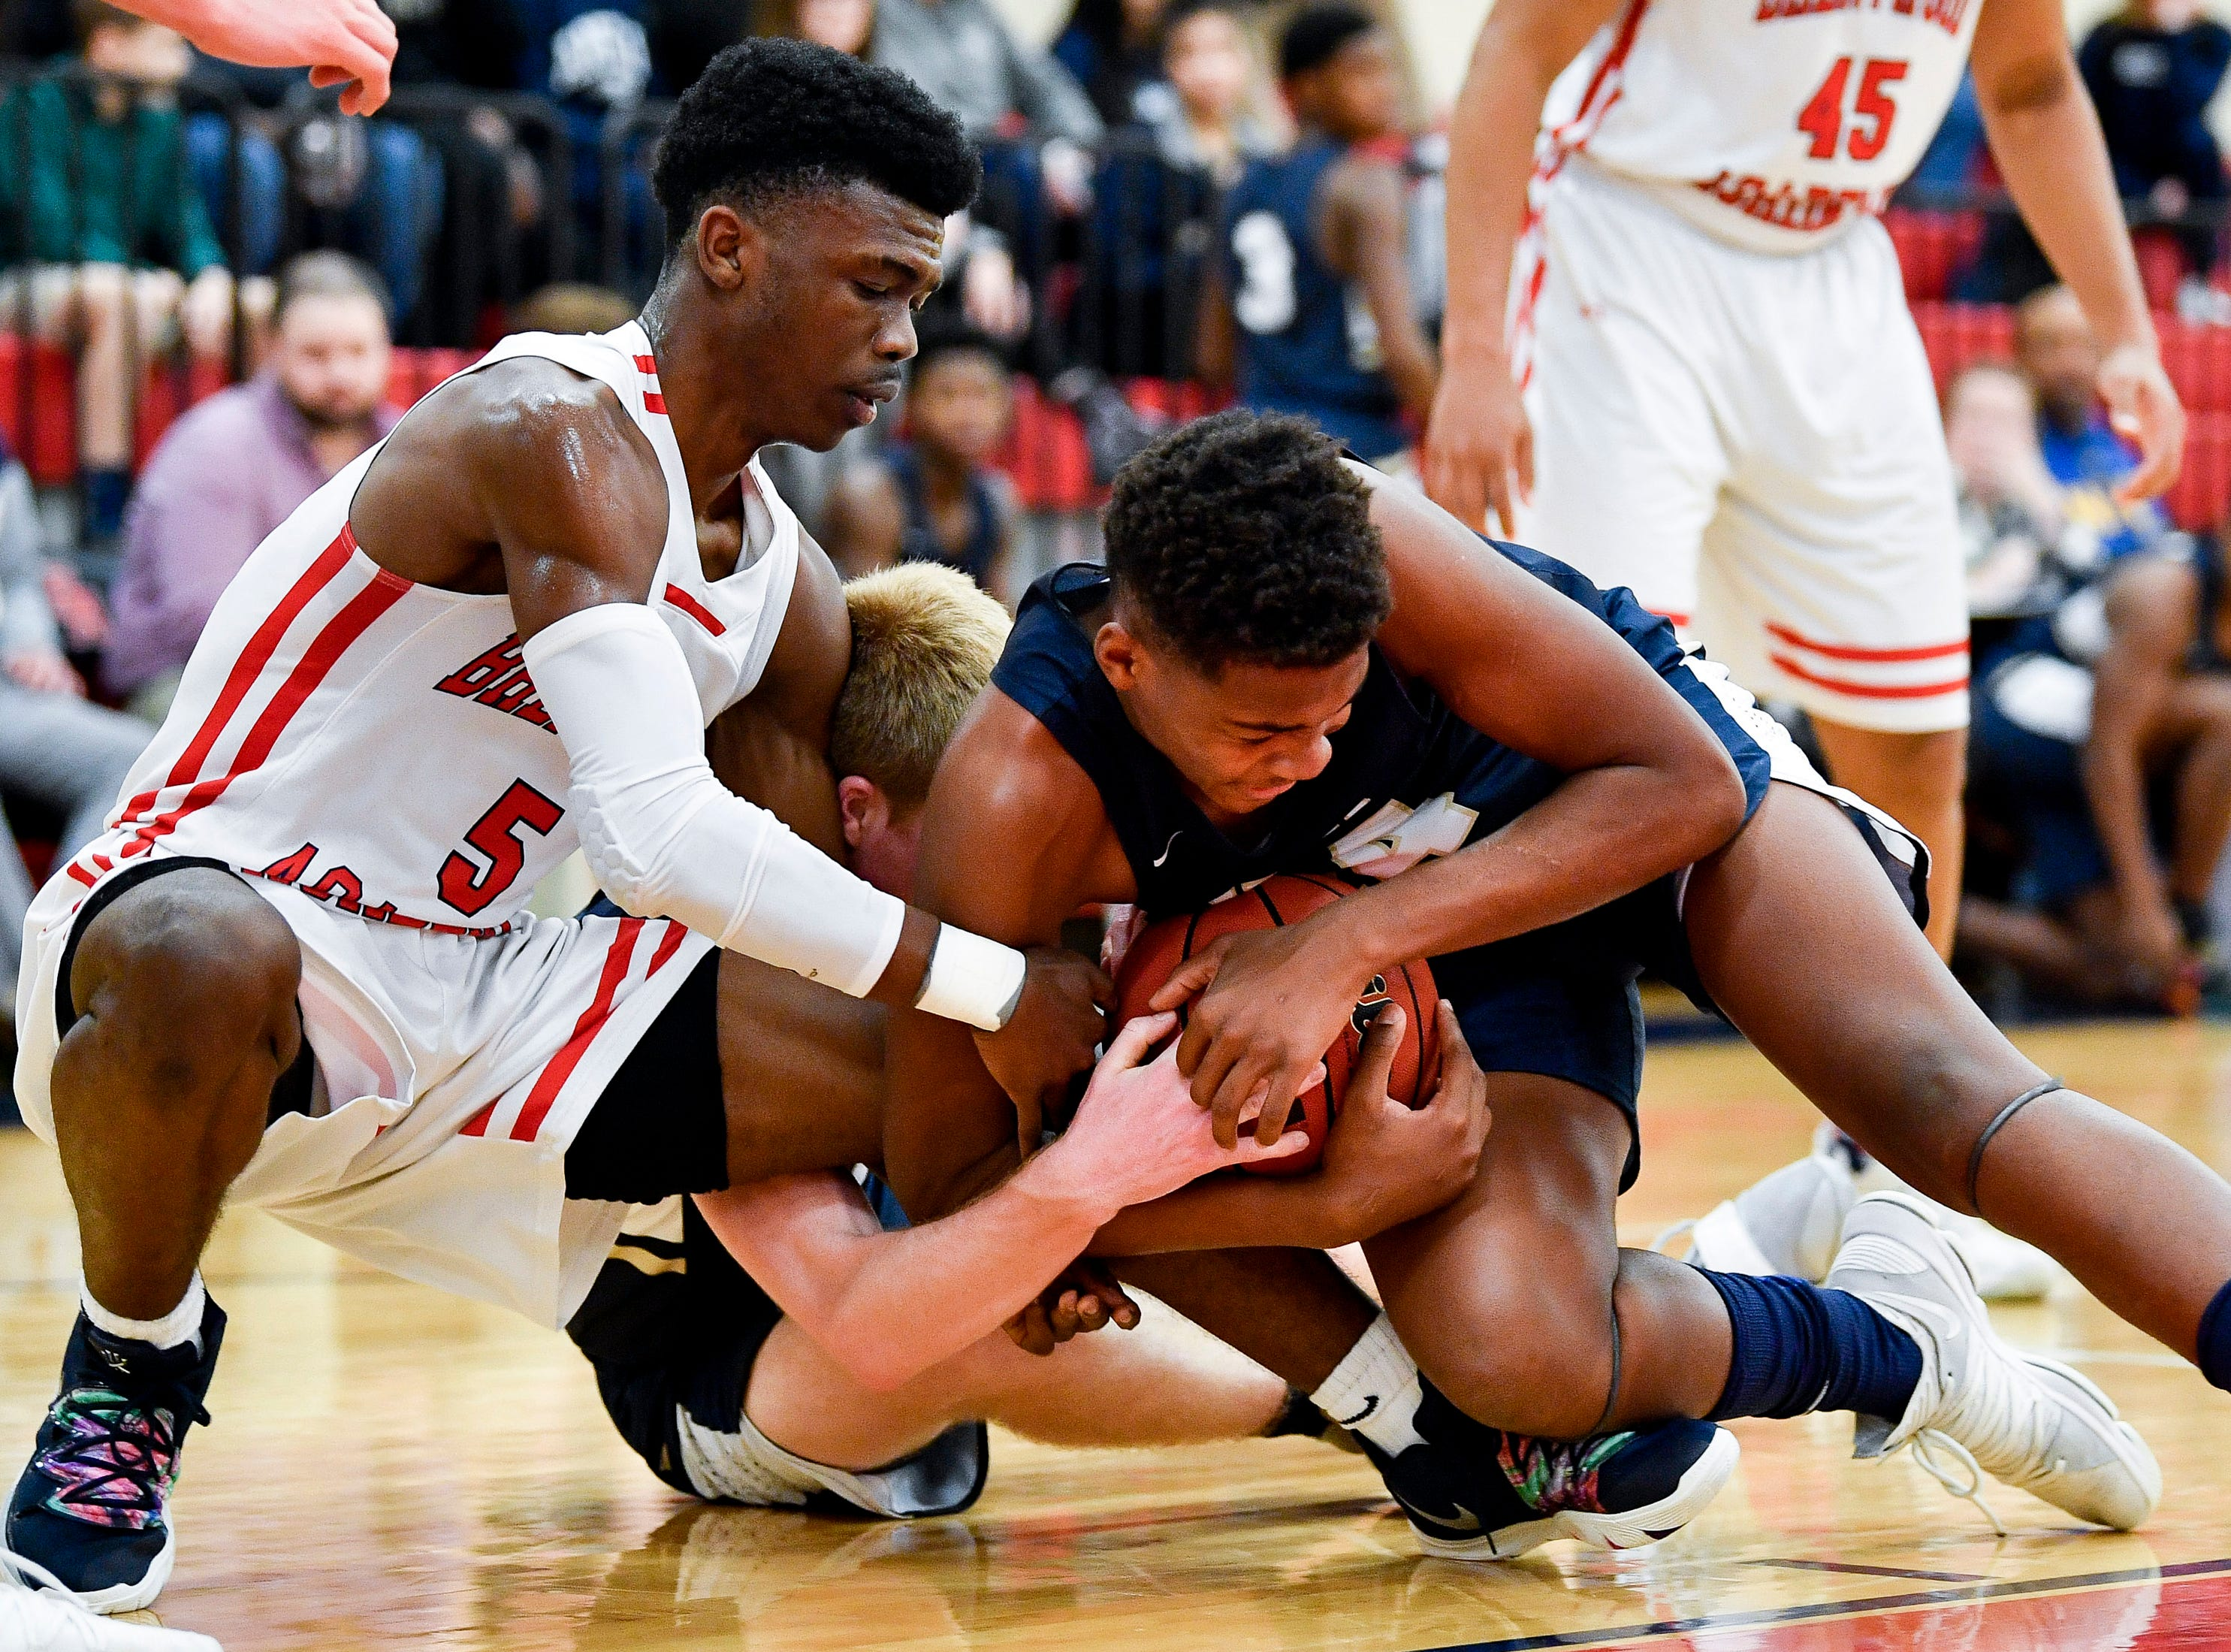 Brentwood Academy's Marcus Fitzgerald jr. (5) fights for the ball with Pope John Paul II's Michael Martini (1) and Ben Nixon (24) during the first half at Brentwood Academy in Brentwood, Tenn., Friday, Jan. 4, 2019.